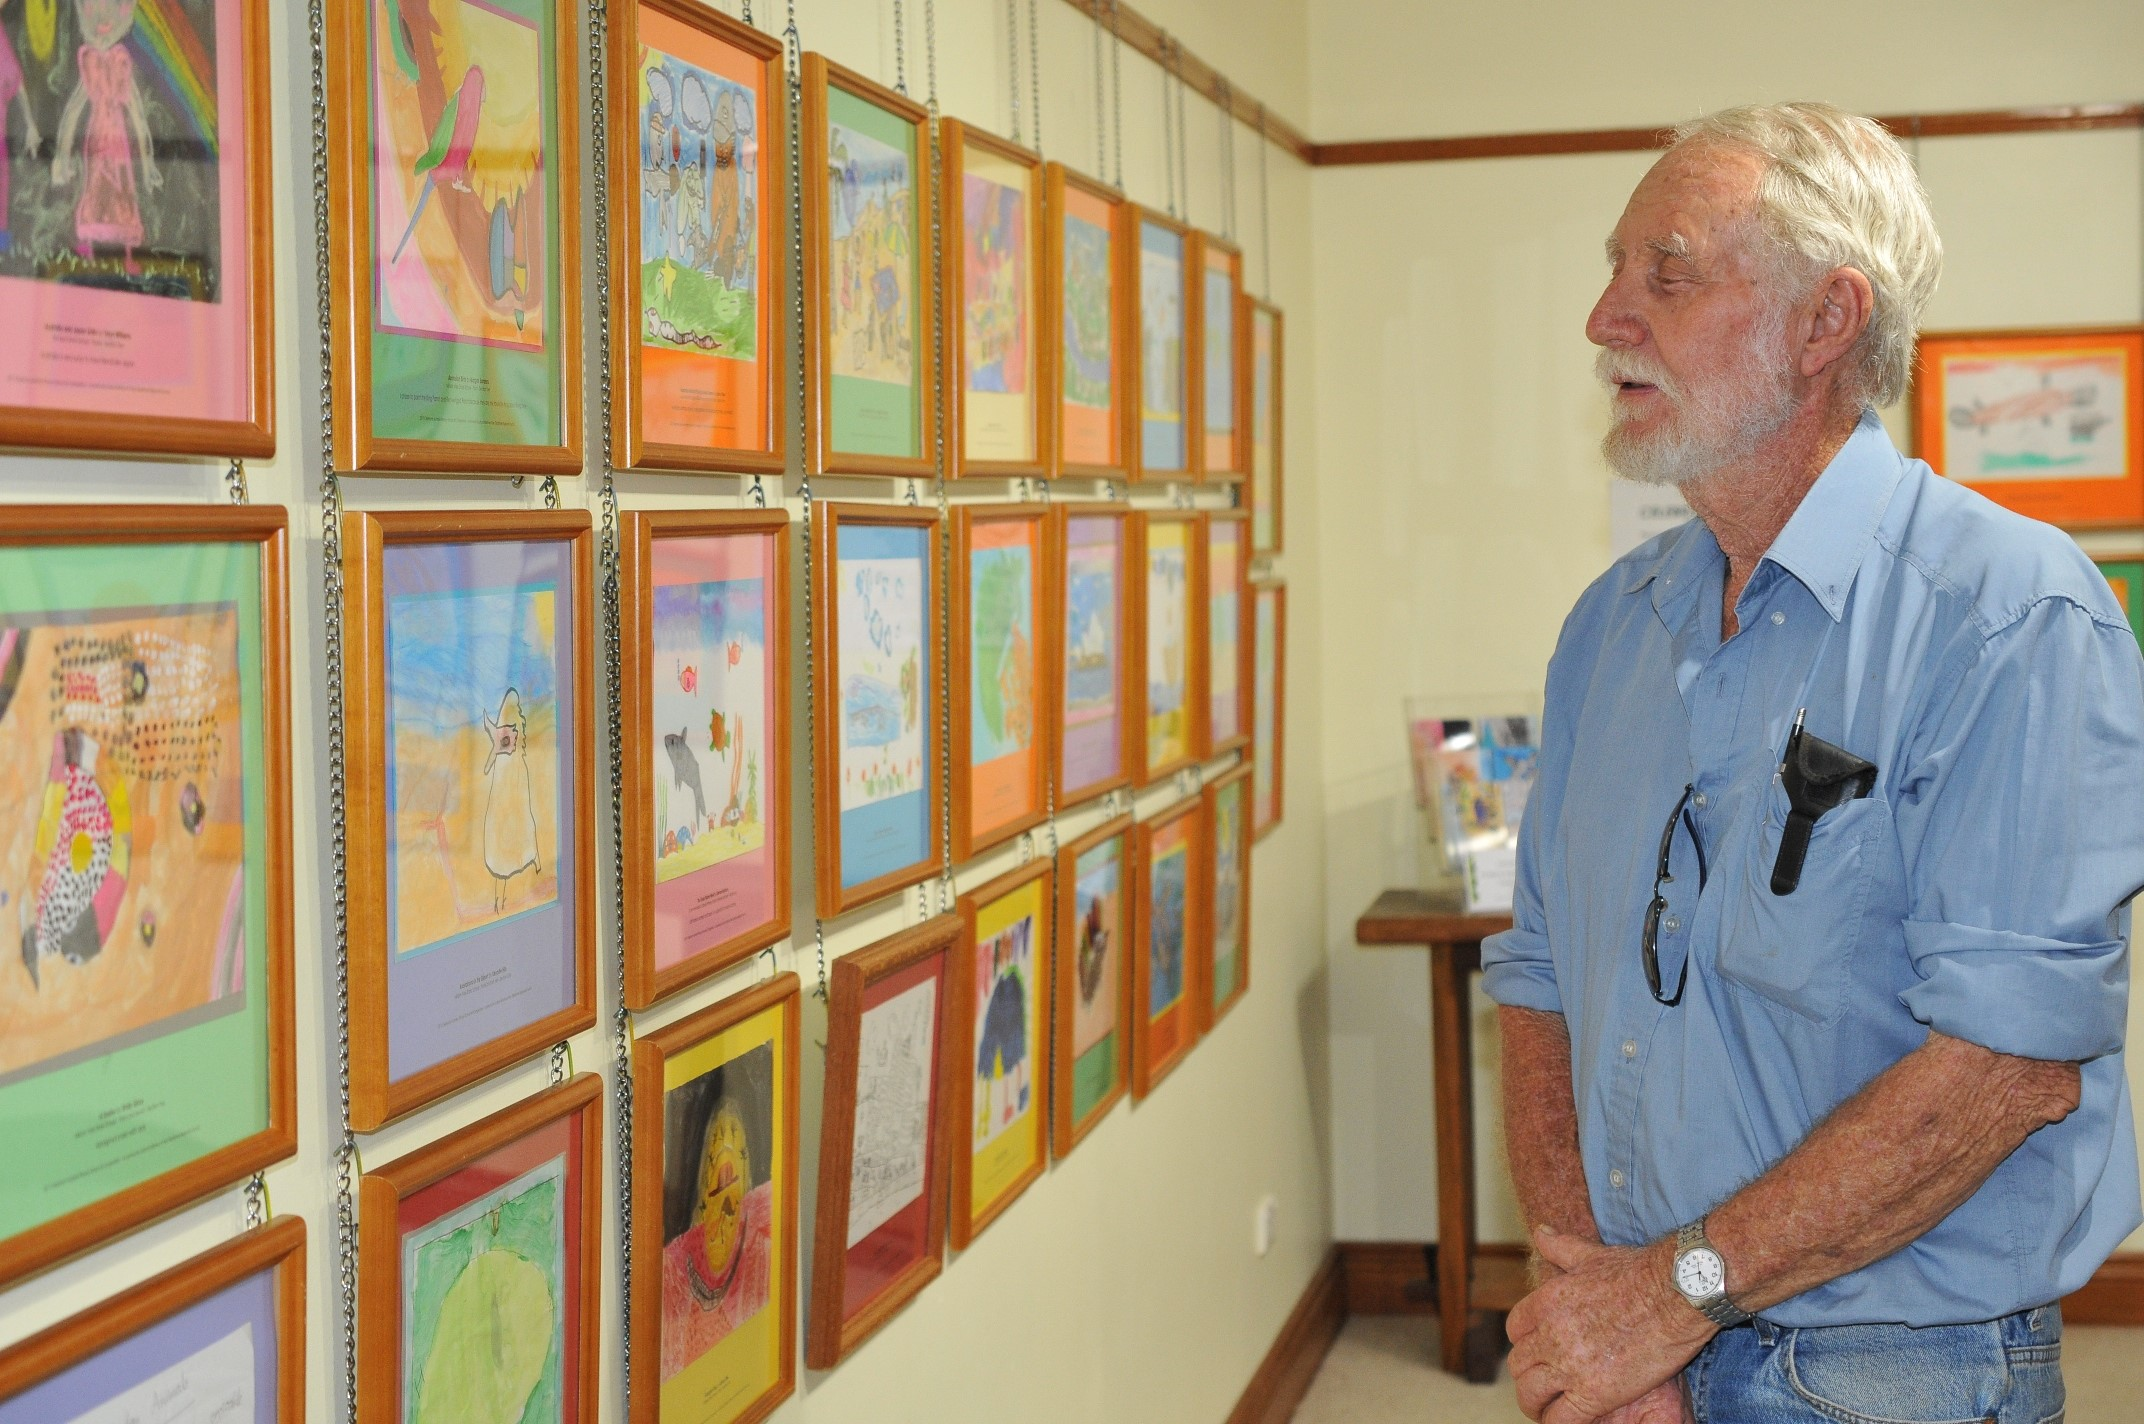 Students awarded for their artistic efforts to celebrate Australia